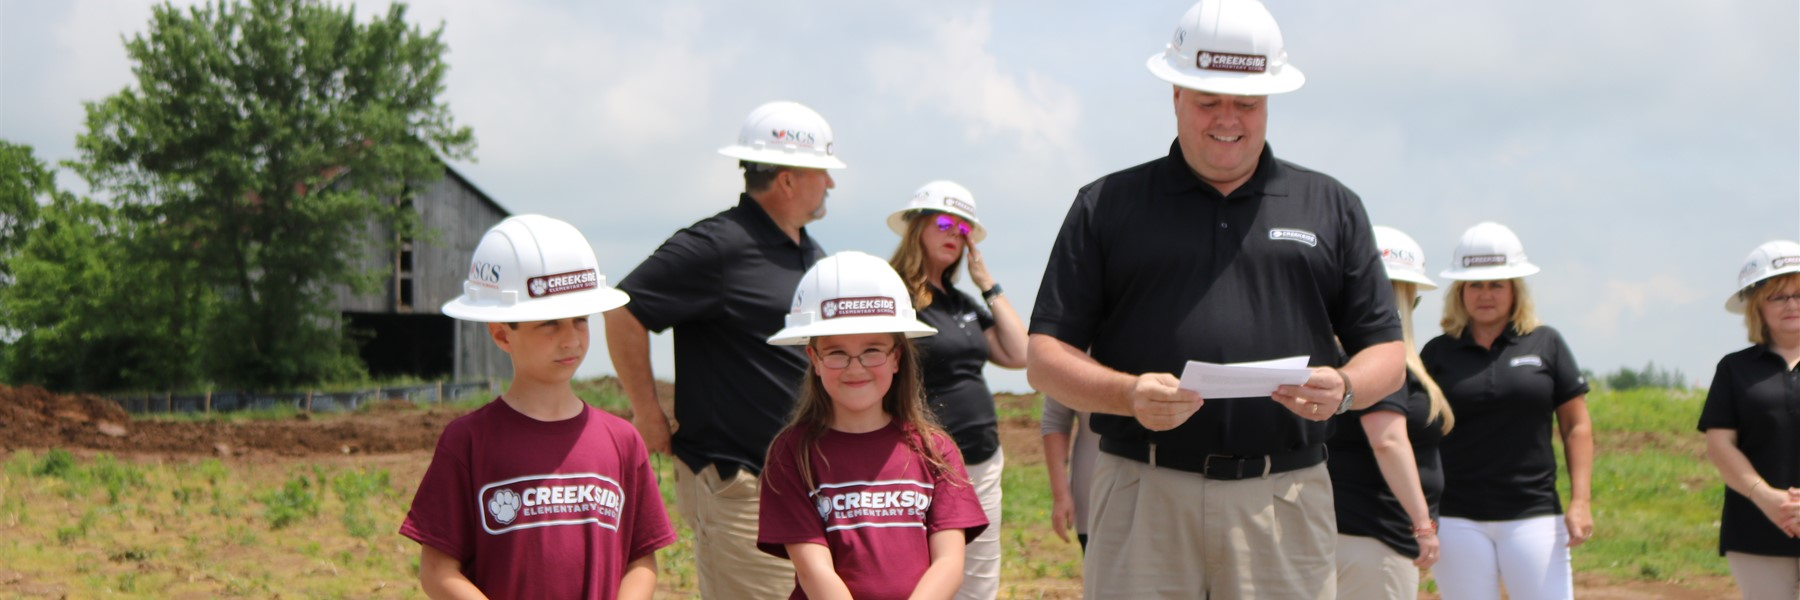 Creekside Groundbreaking